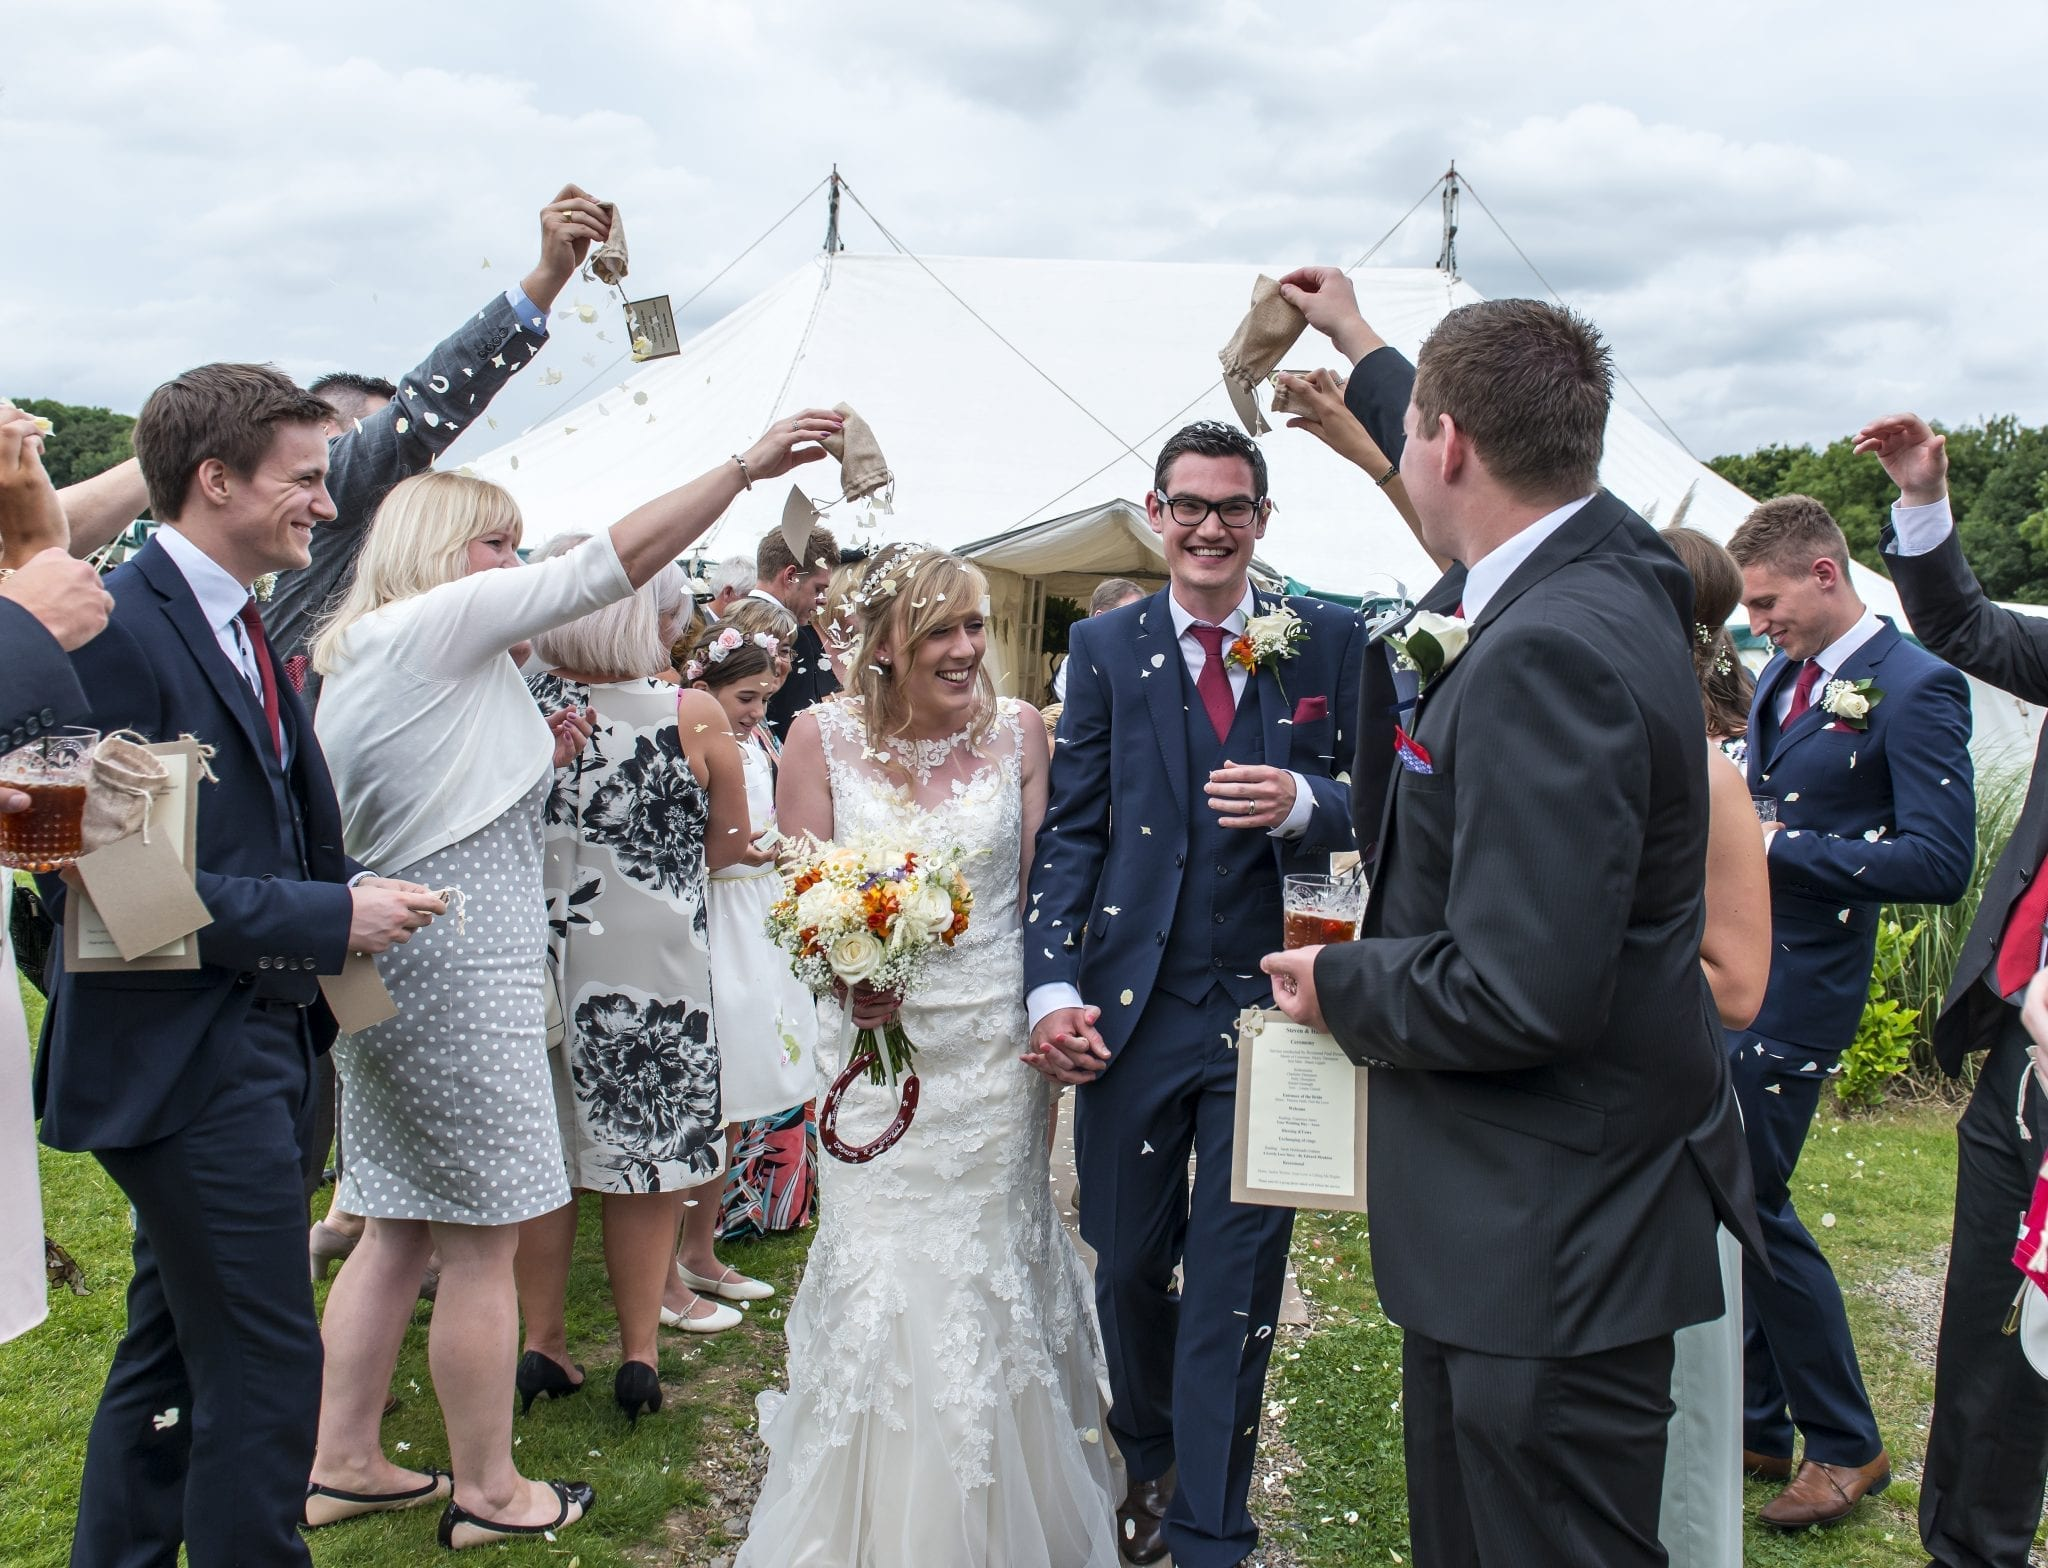 Real Wedding: Harriet and Steven's Vintage Outdoor Wedding